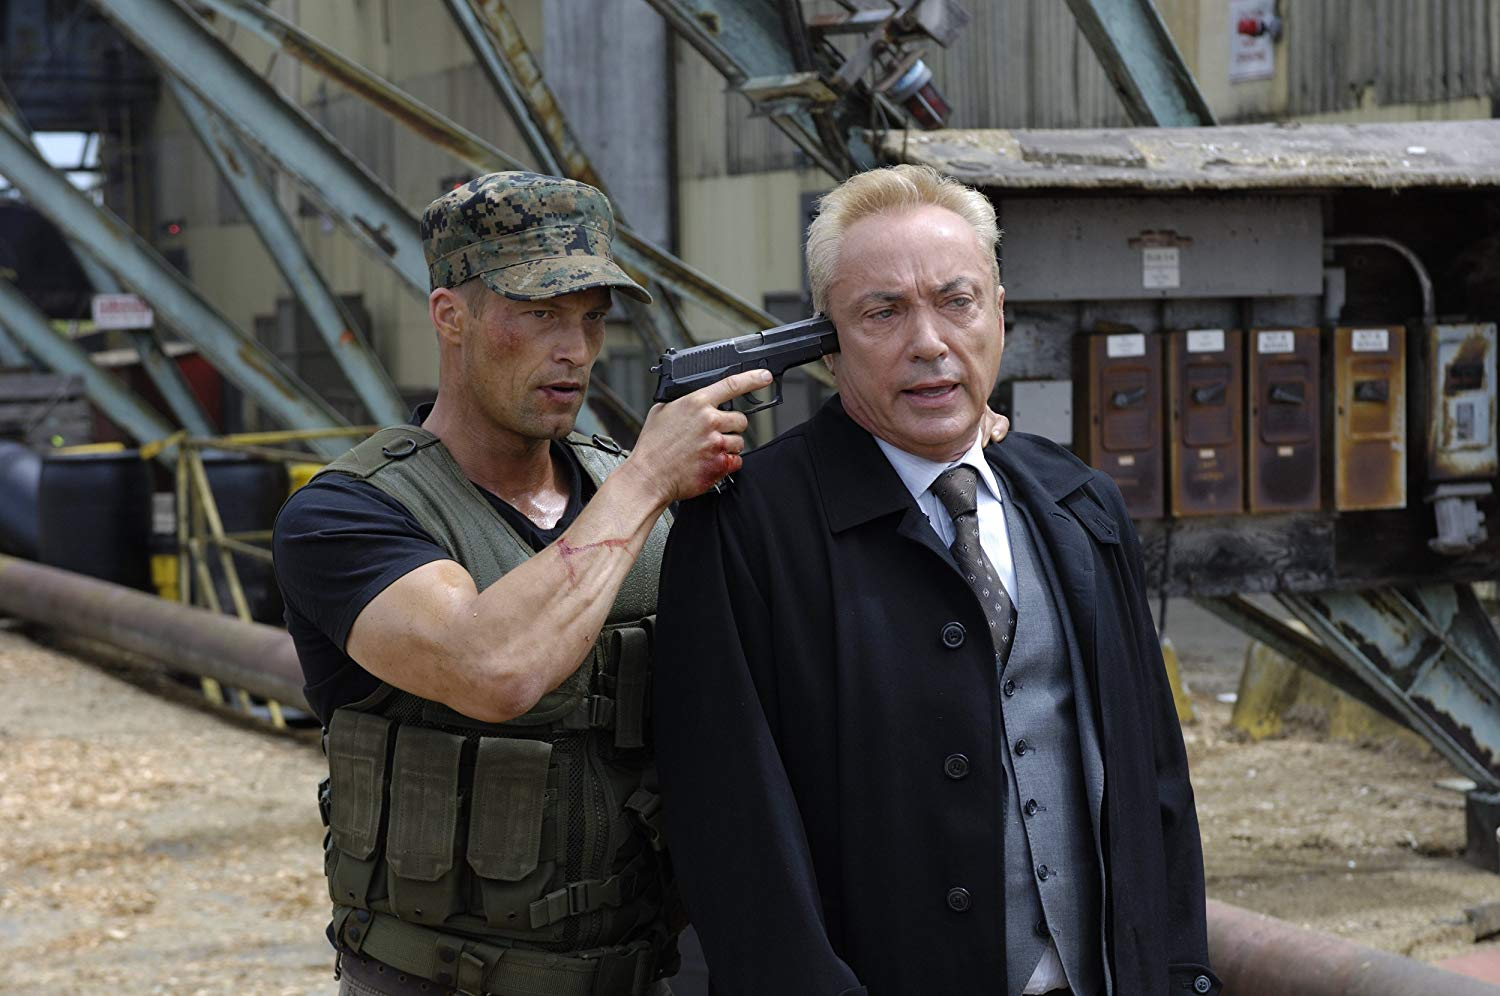 Til Schweiger takes Udo Kier prisoner in Far Cry (2008)